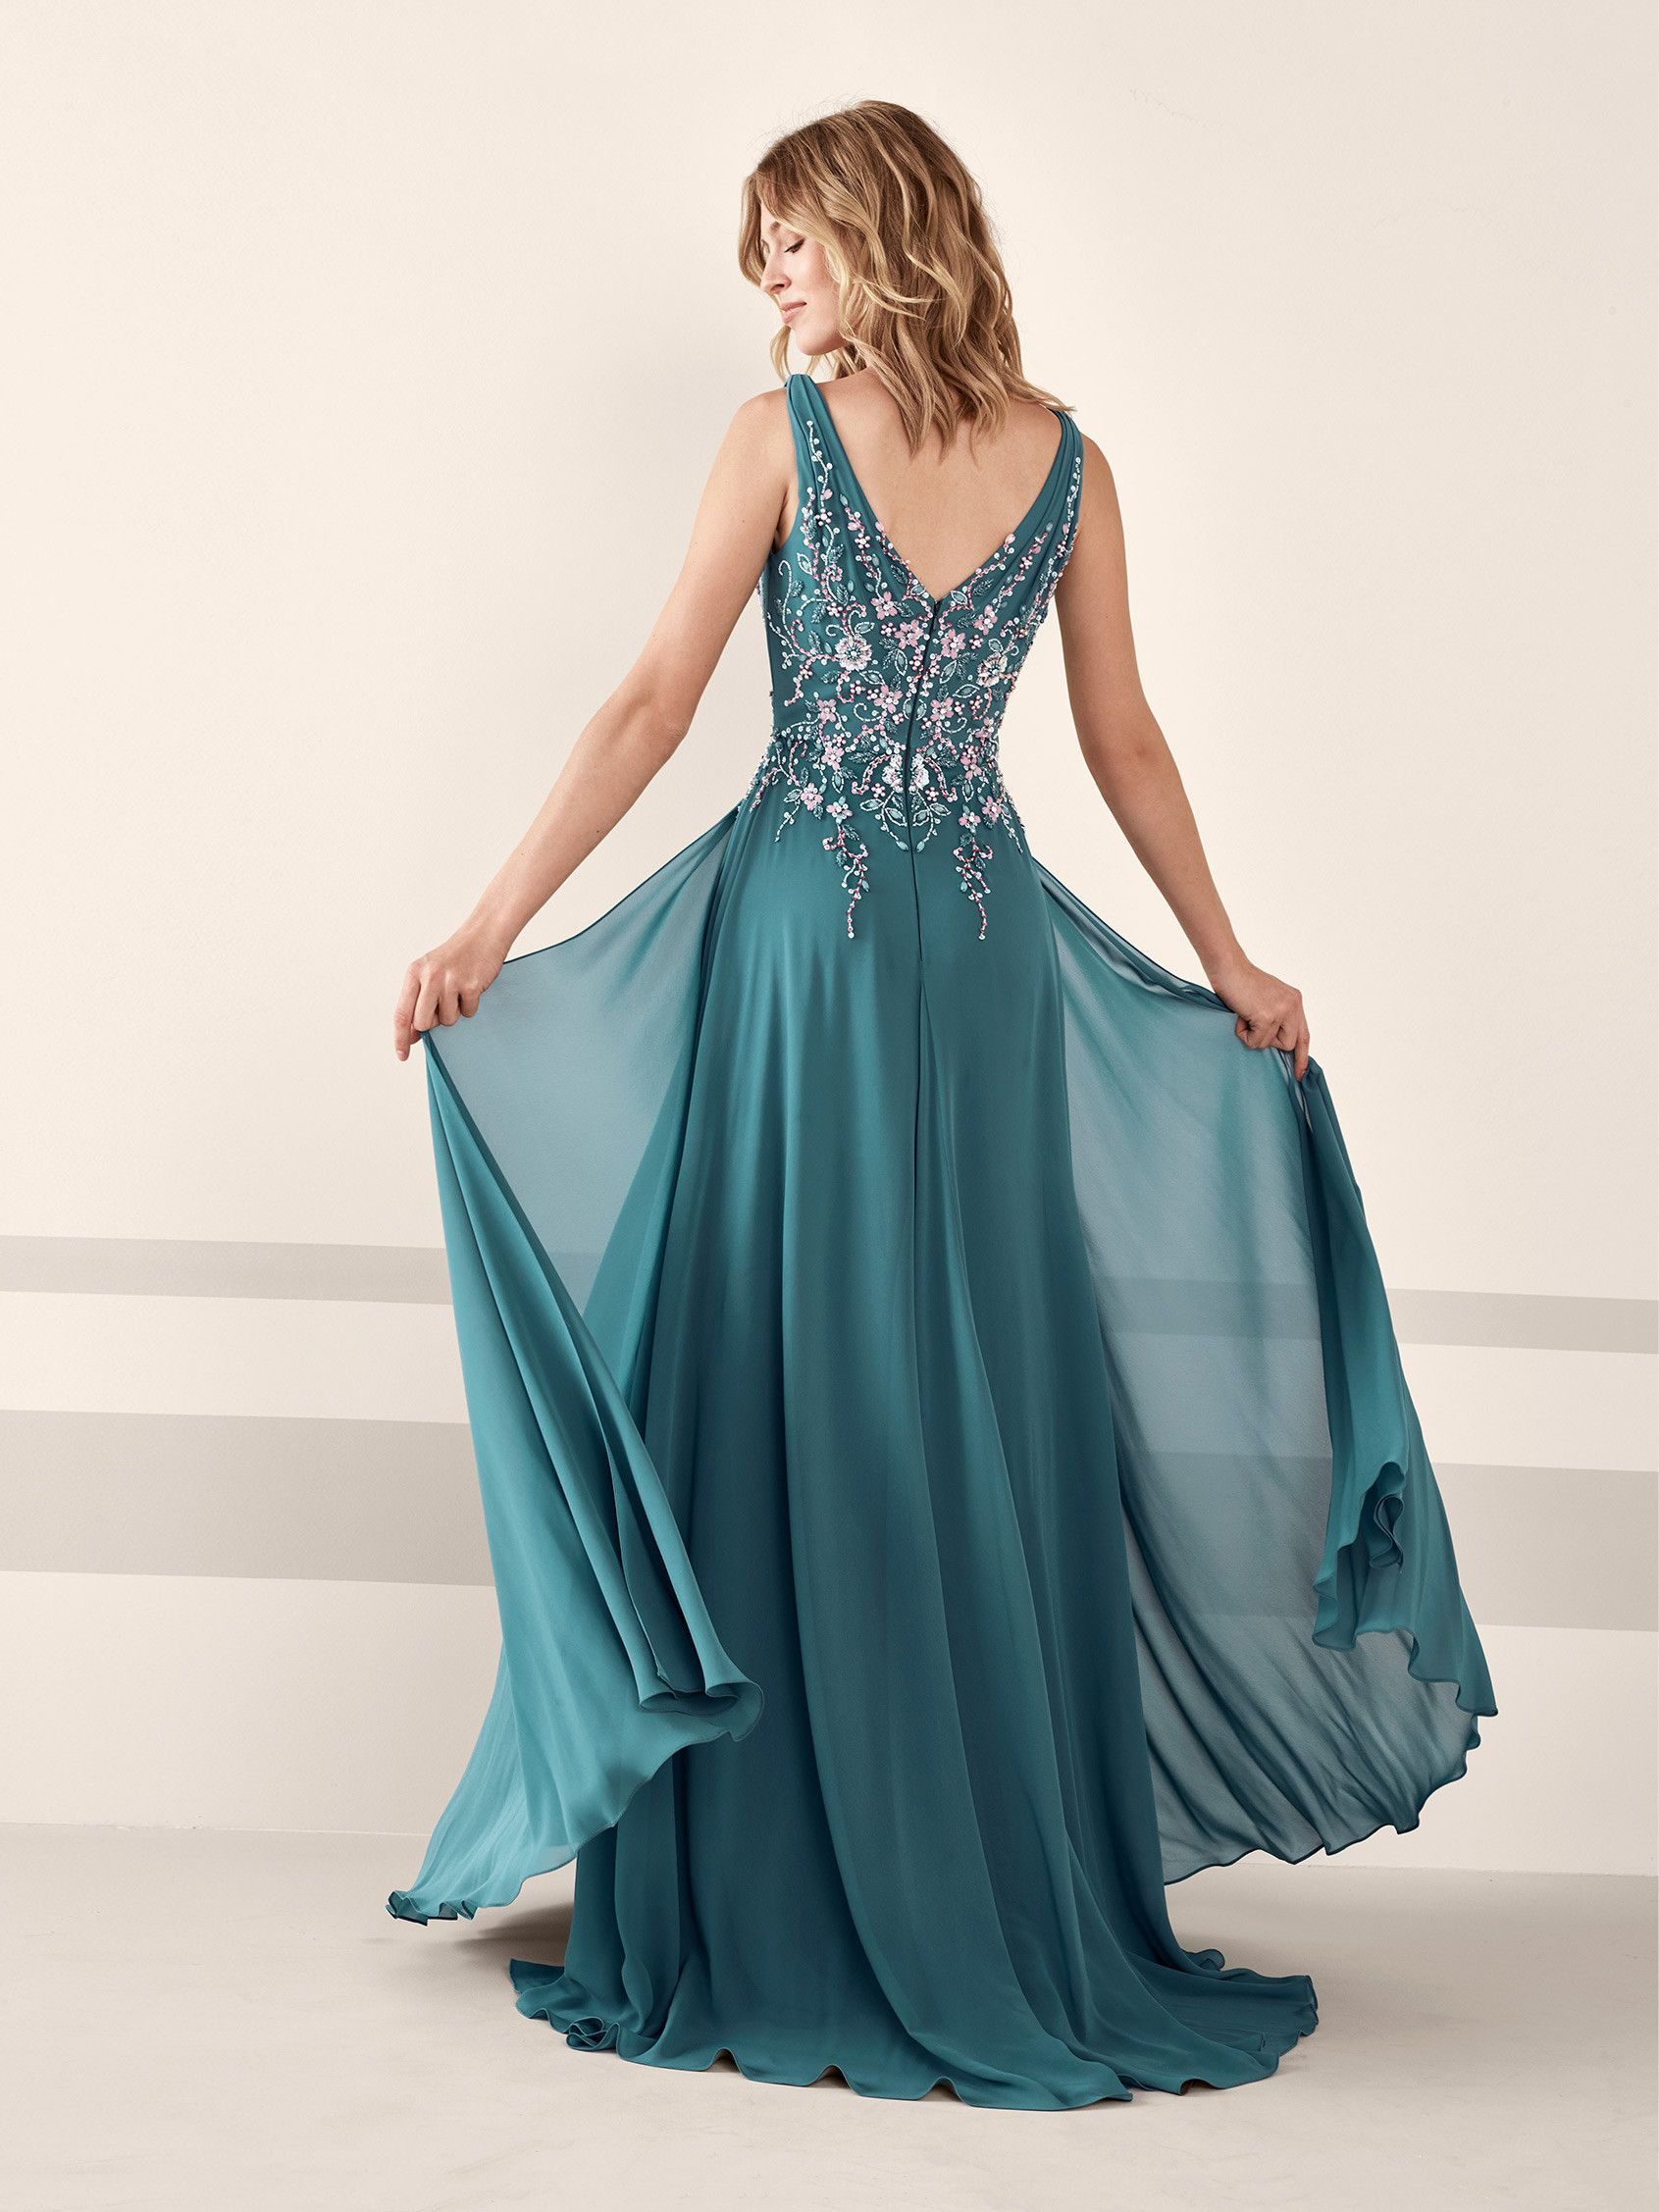 Splendid cocktail dress in chiffon with rhinestones jessica